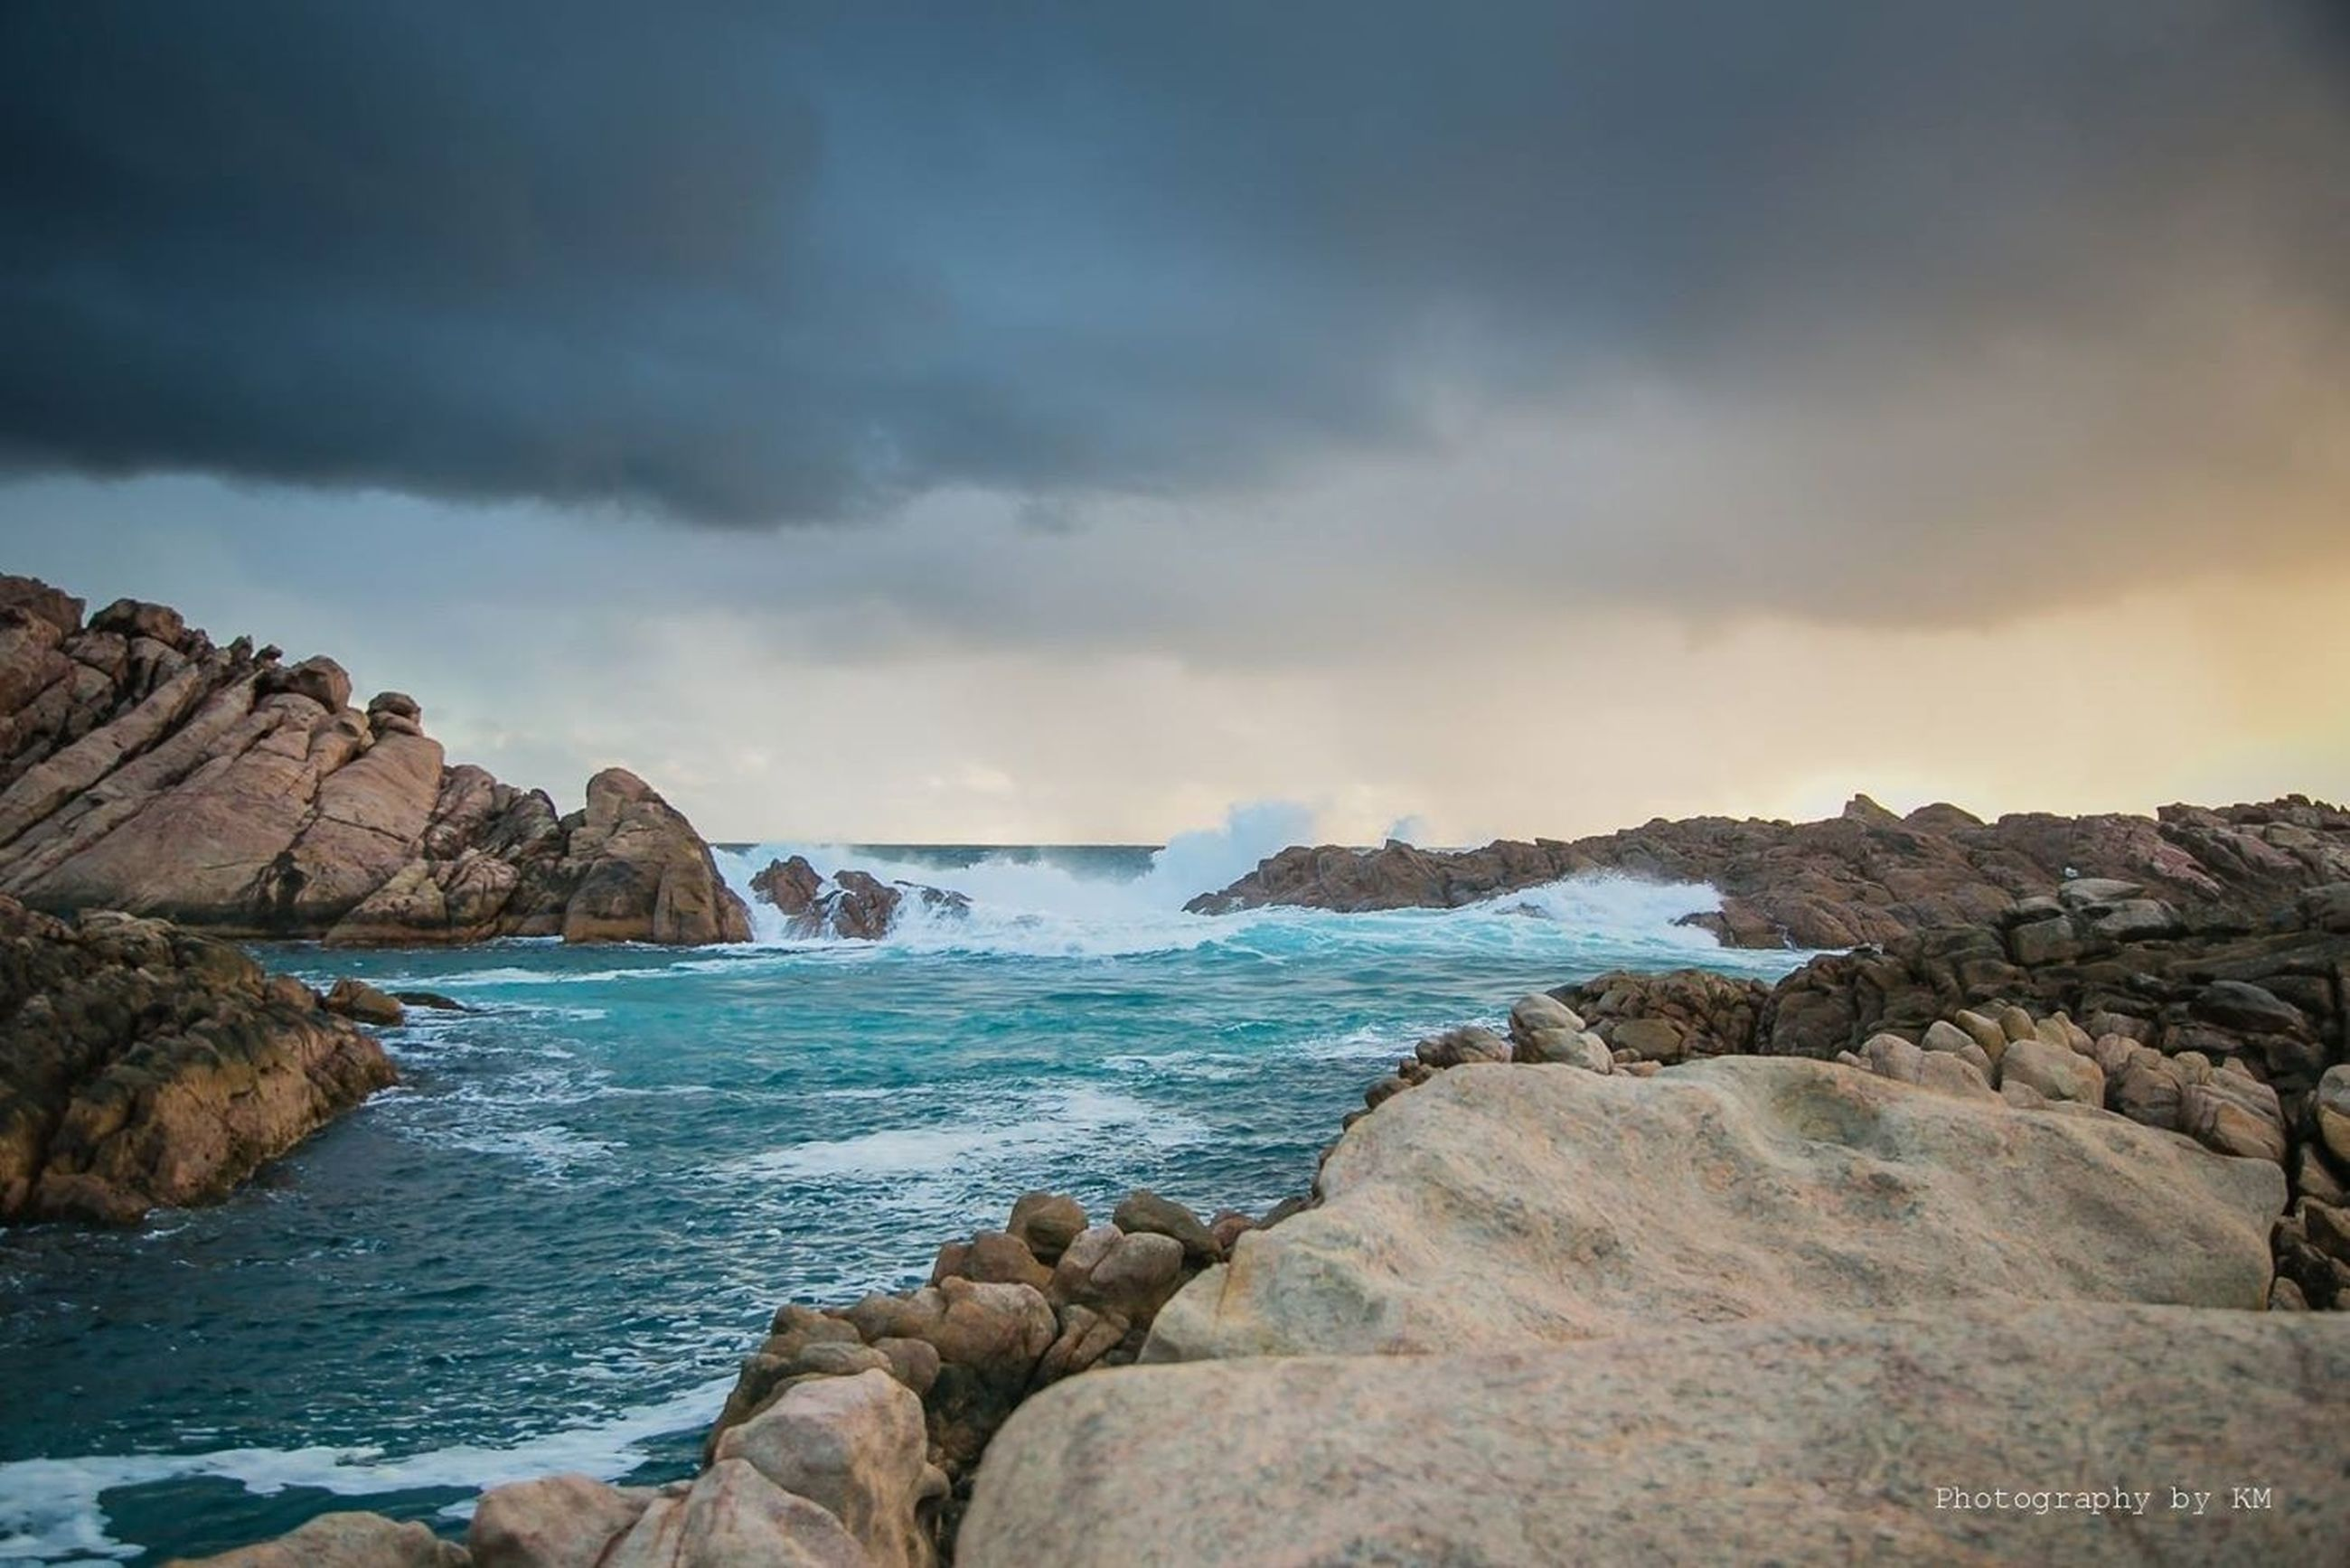 sea, water, scenics, sky, rock - object, beauty in nature, tranquil scene, tranquility, rock formation, nature, cloud - sky, horizon over water, rock, idyllic, cloudy, shore, beach, cloud, outdoors, cliff